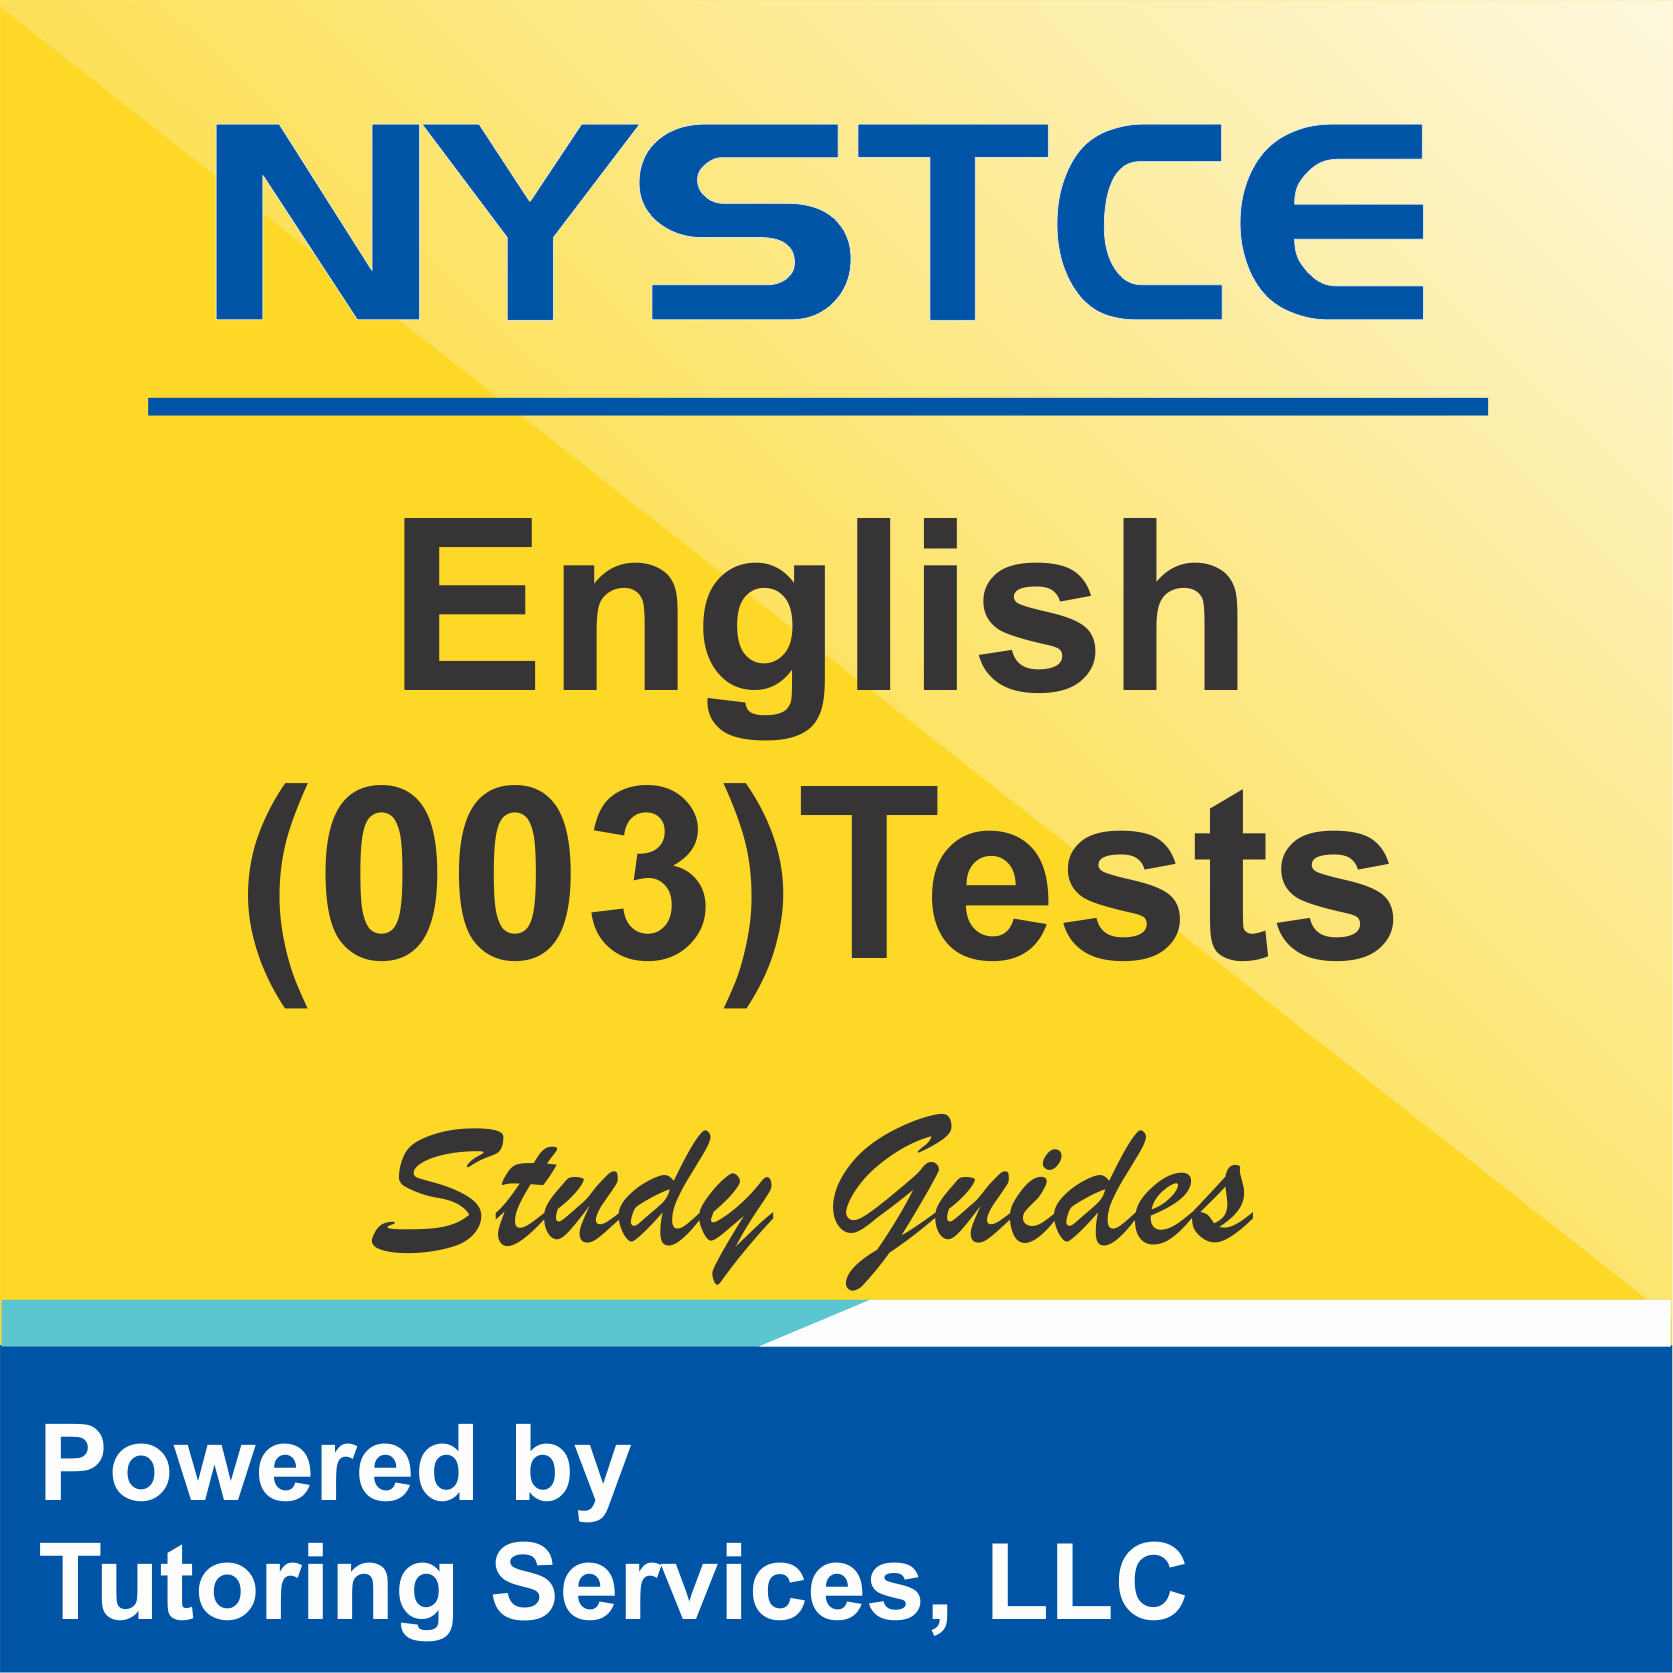 NYSTCE New York State Test and Exam Details for English 003